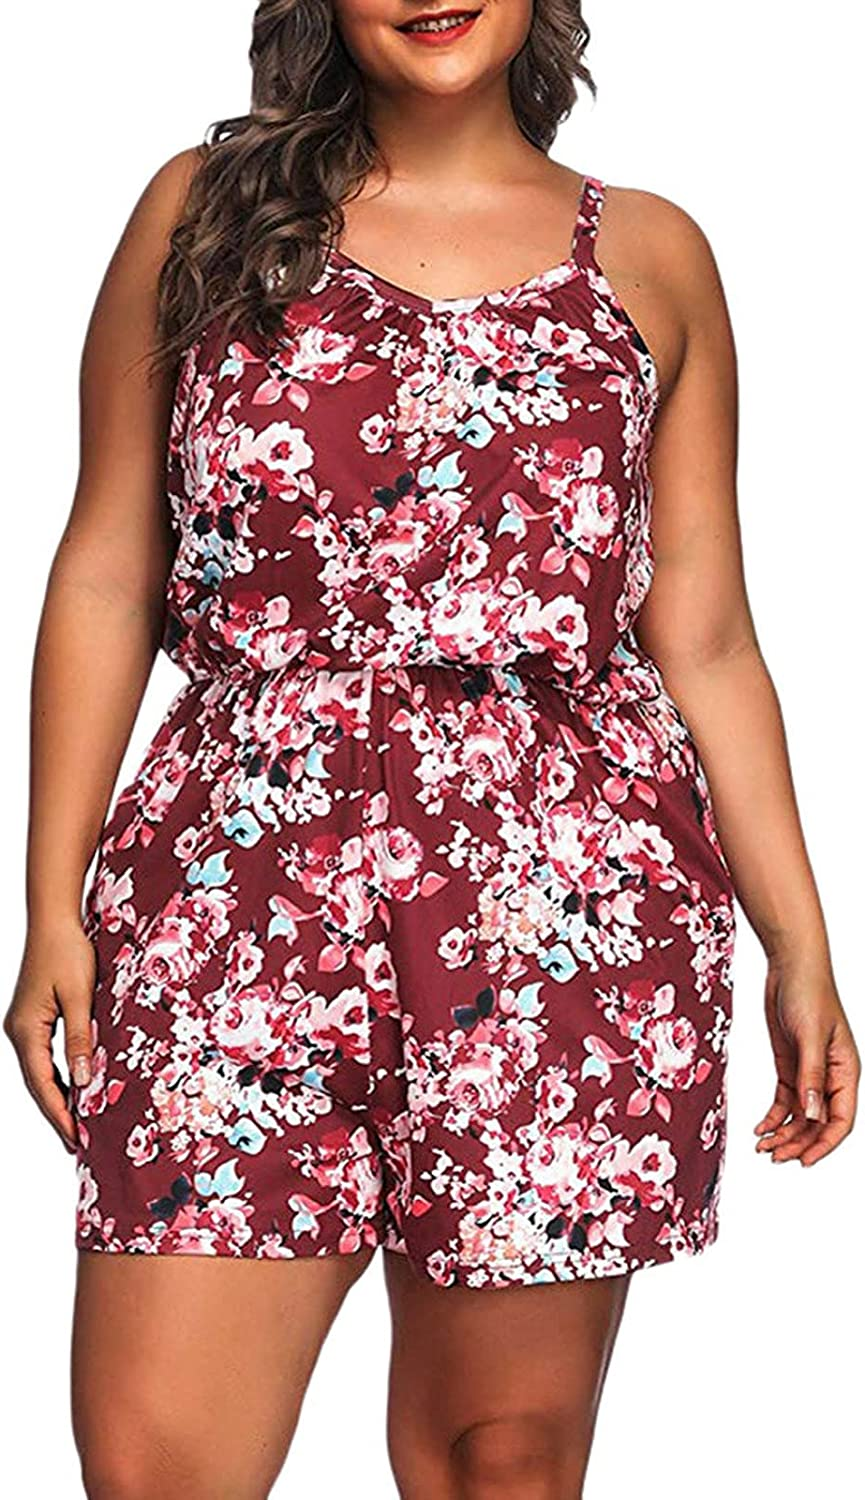 Plus Size Jumpsuits for Women Casual Summer Bohemian Floral Print Cold Shoulder Jumpsuit Rompers Outfits